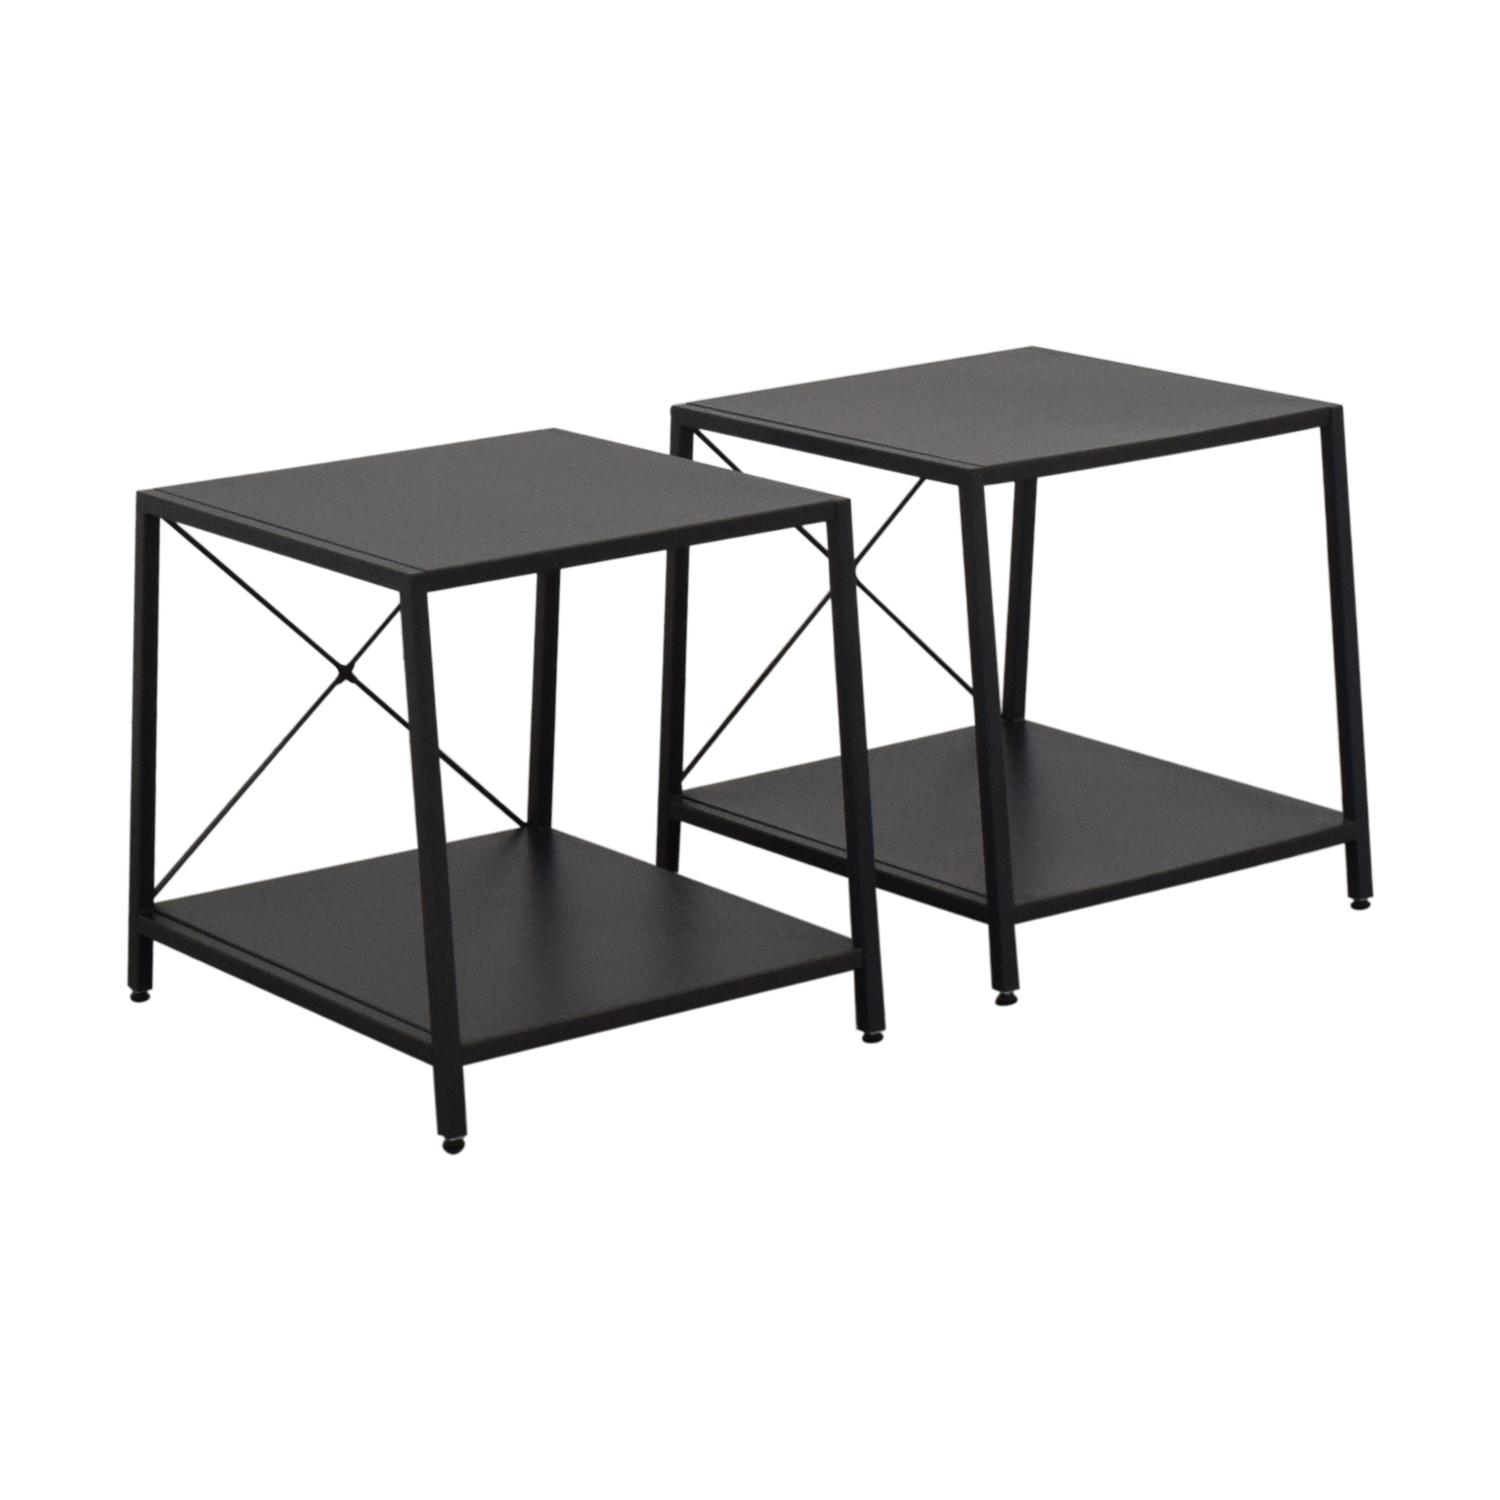 CB2 CB2 Harvey Gunmetal Nightstands second hand